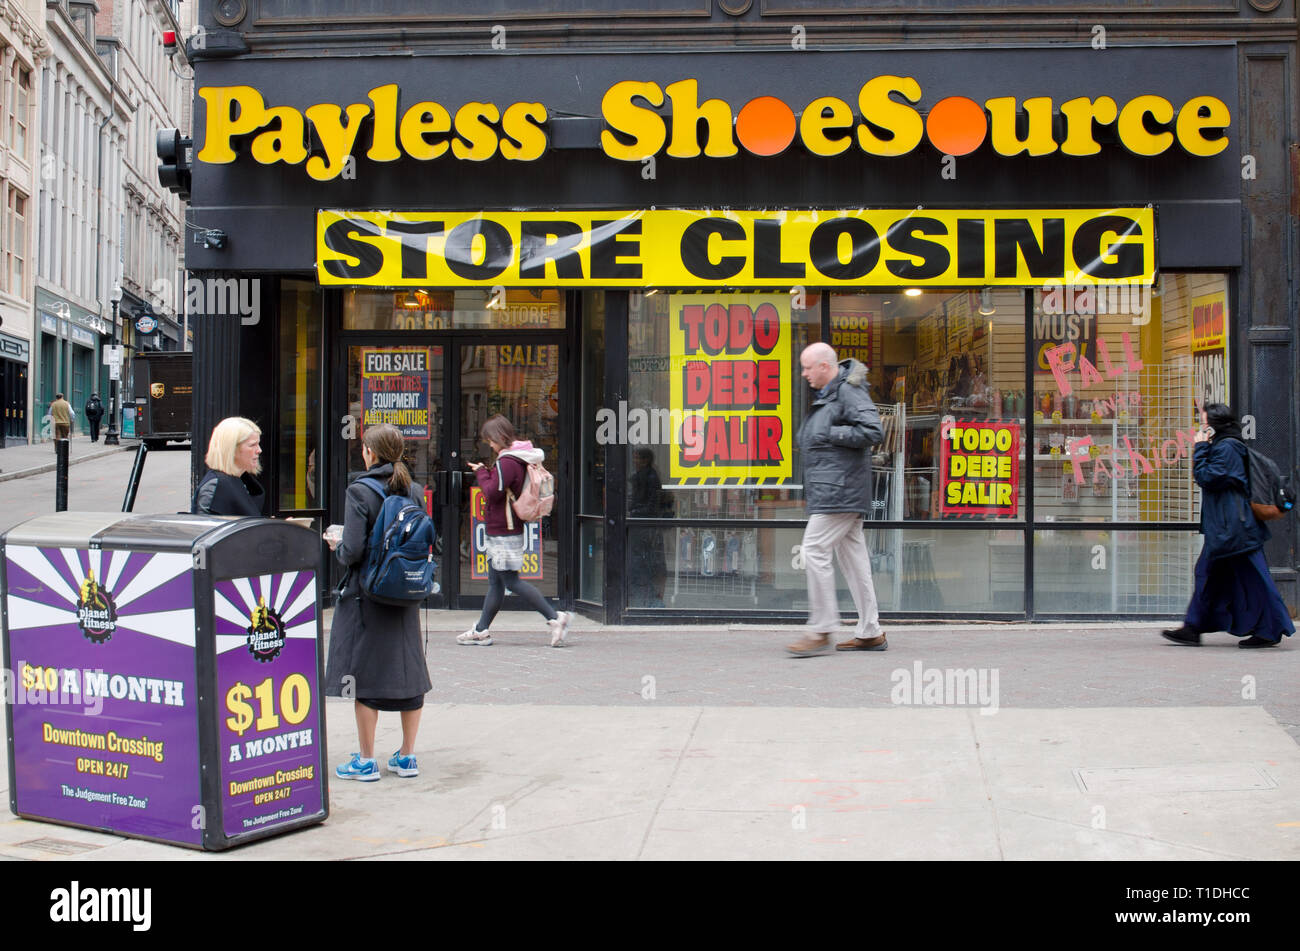 Payless Shoe Source store closing with people in motion on sidewalk in Downtown Crossing Boston, Massachusetts USA - Stock Image